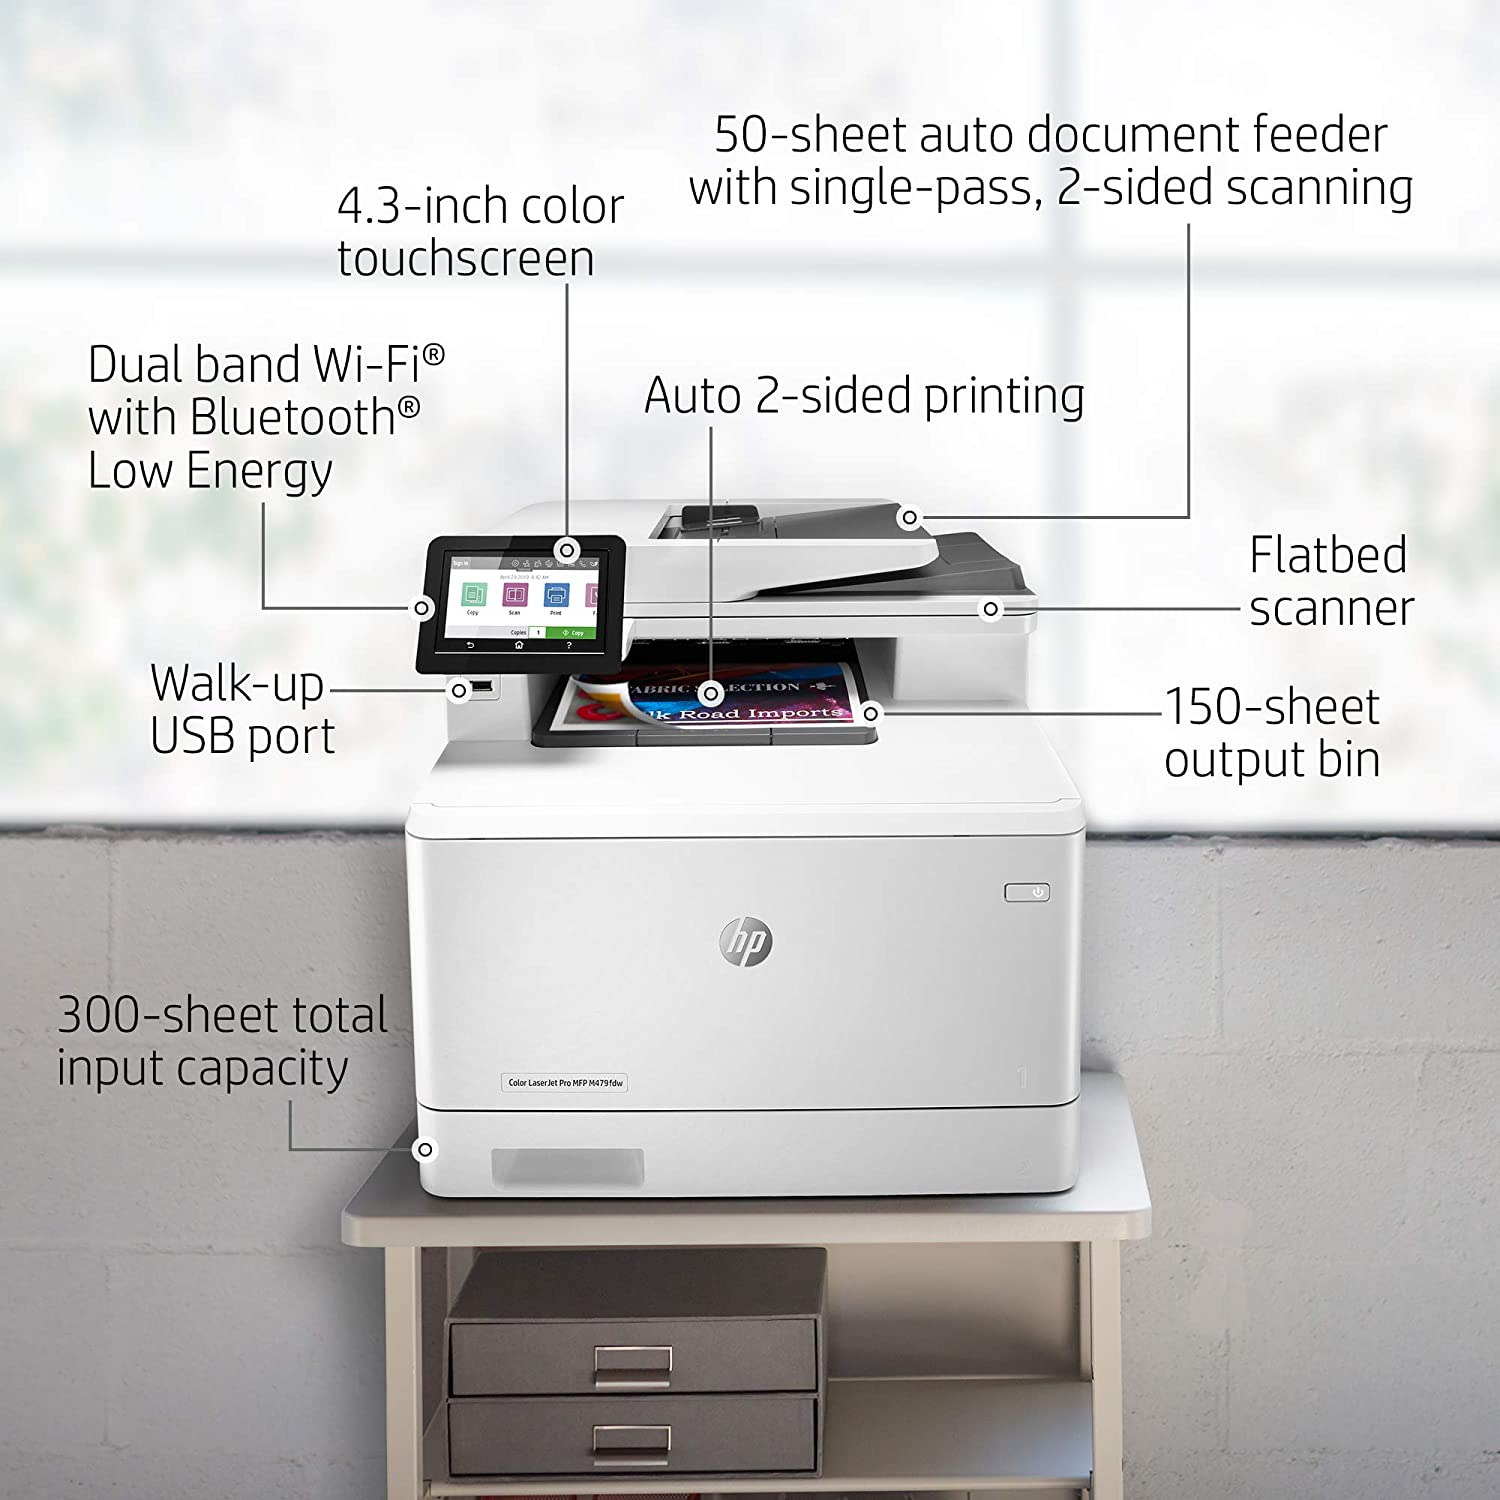 HP Color LaserJet Pro Multifunction M479fdw Wireless Laser Printer with One-Year, Next-Business Day, Onsite Warranty (W1A80A)